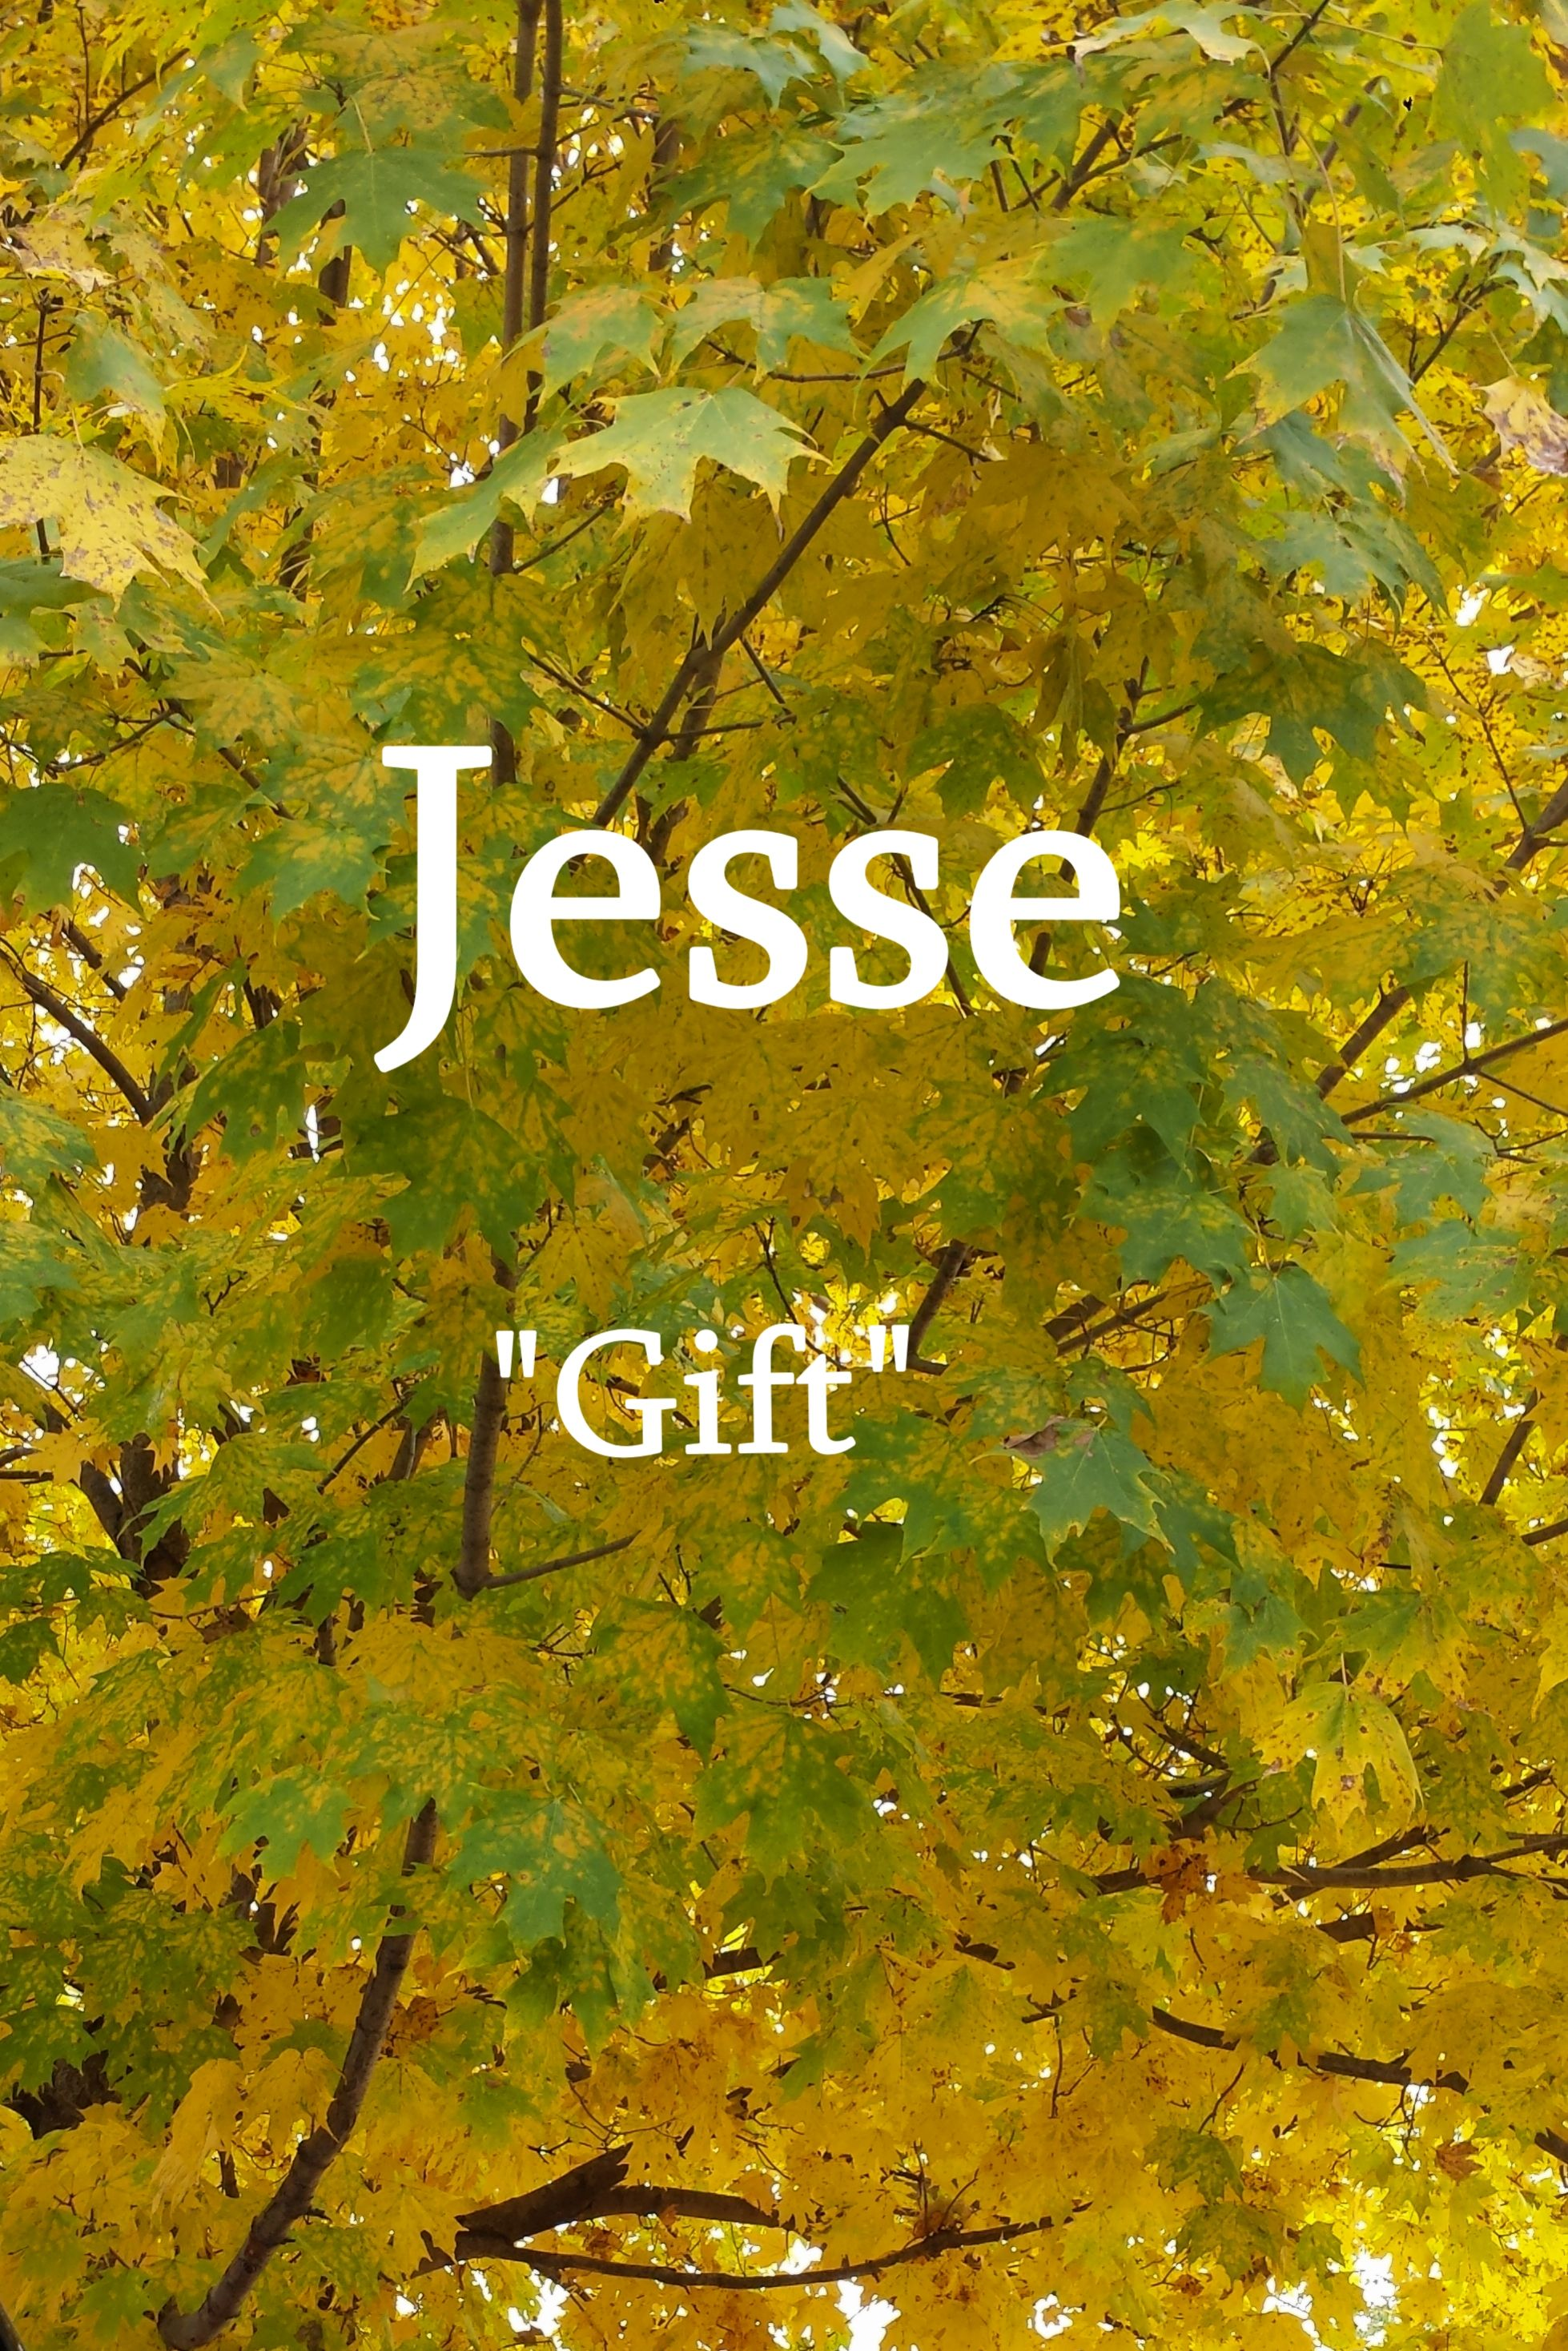 "Jesse, a Hebrew name meaning ""gift"" 